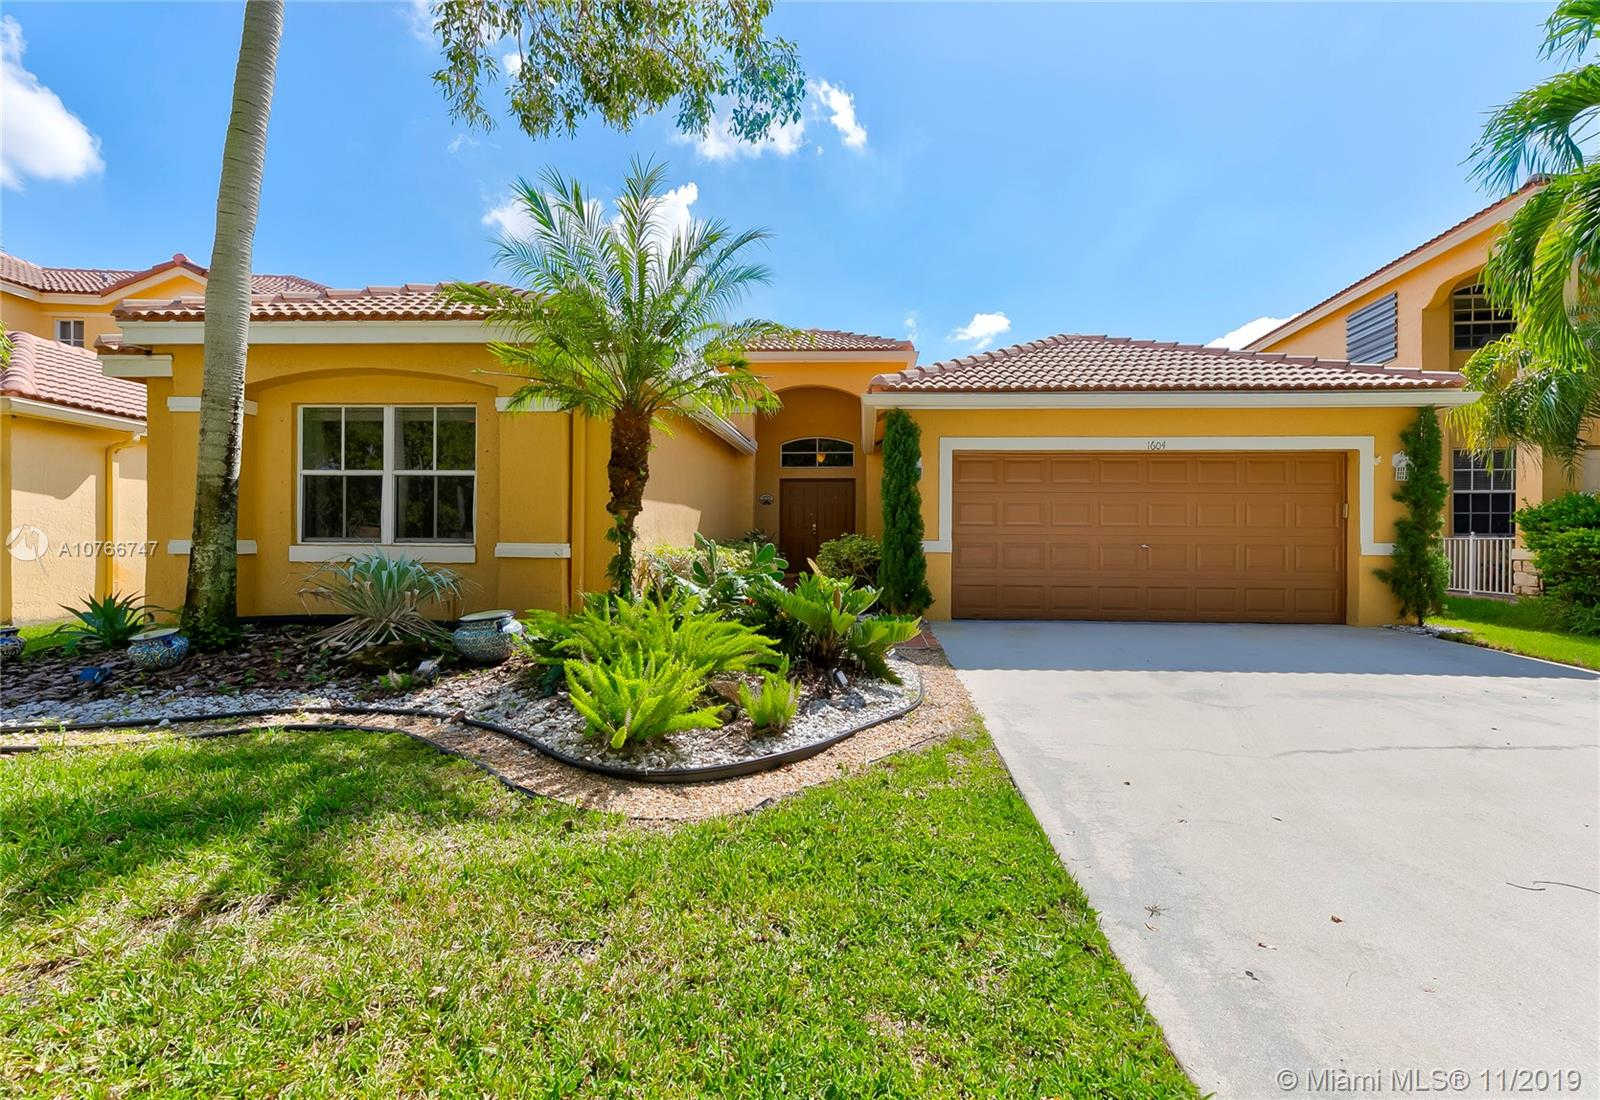 1604 Sandpiper Circle, Weston, FL 33327 has an Open House on  Saturday, November 9, 2019 2:00 PM to 5:00 PM